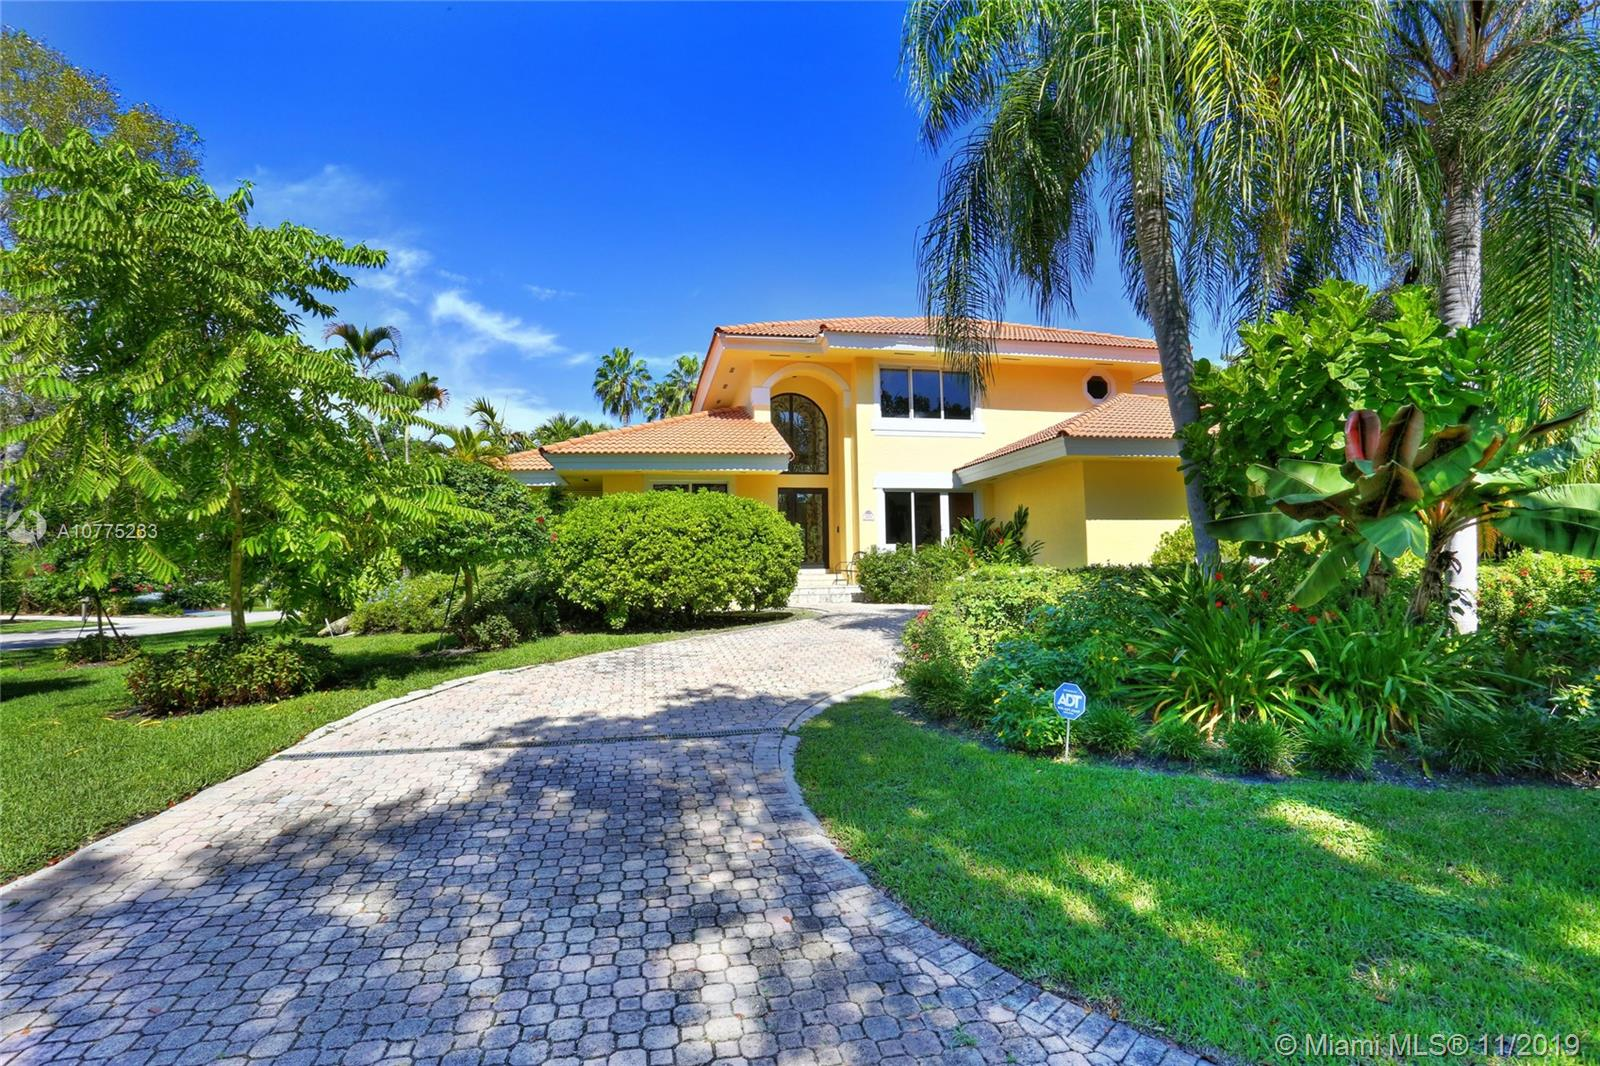 Located in a popular and prestigious Cocoplum, this 5 bedroom, 5 bath home epitomizes luxury living! Sited on a corner lot of some 15,950 sf, this lovely 4,750 sf Mediterranean villa offers an opportunity fr luxurious family living at its best.  Lovely grounds, beautiful pool area, gourmet cook's kitchen and luxurious master suite, are just a few of the amenities this home as to offer.  Motivated seller has moved on to a larger Cocoplum home.